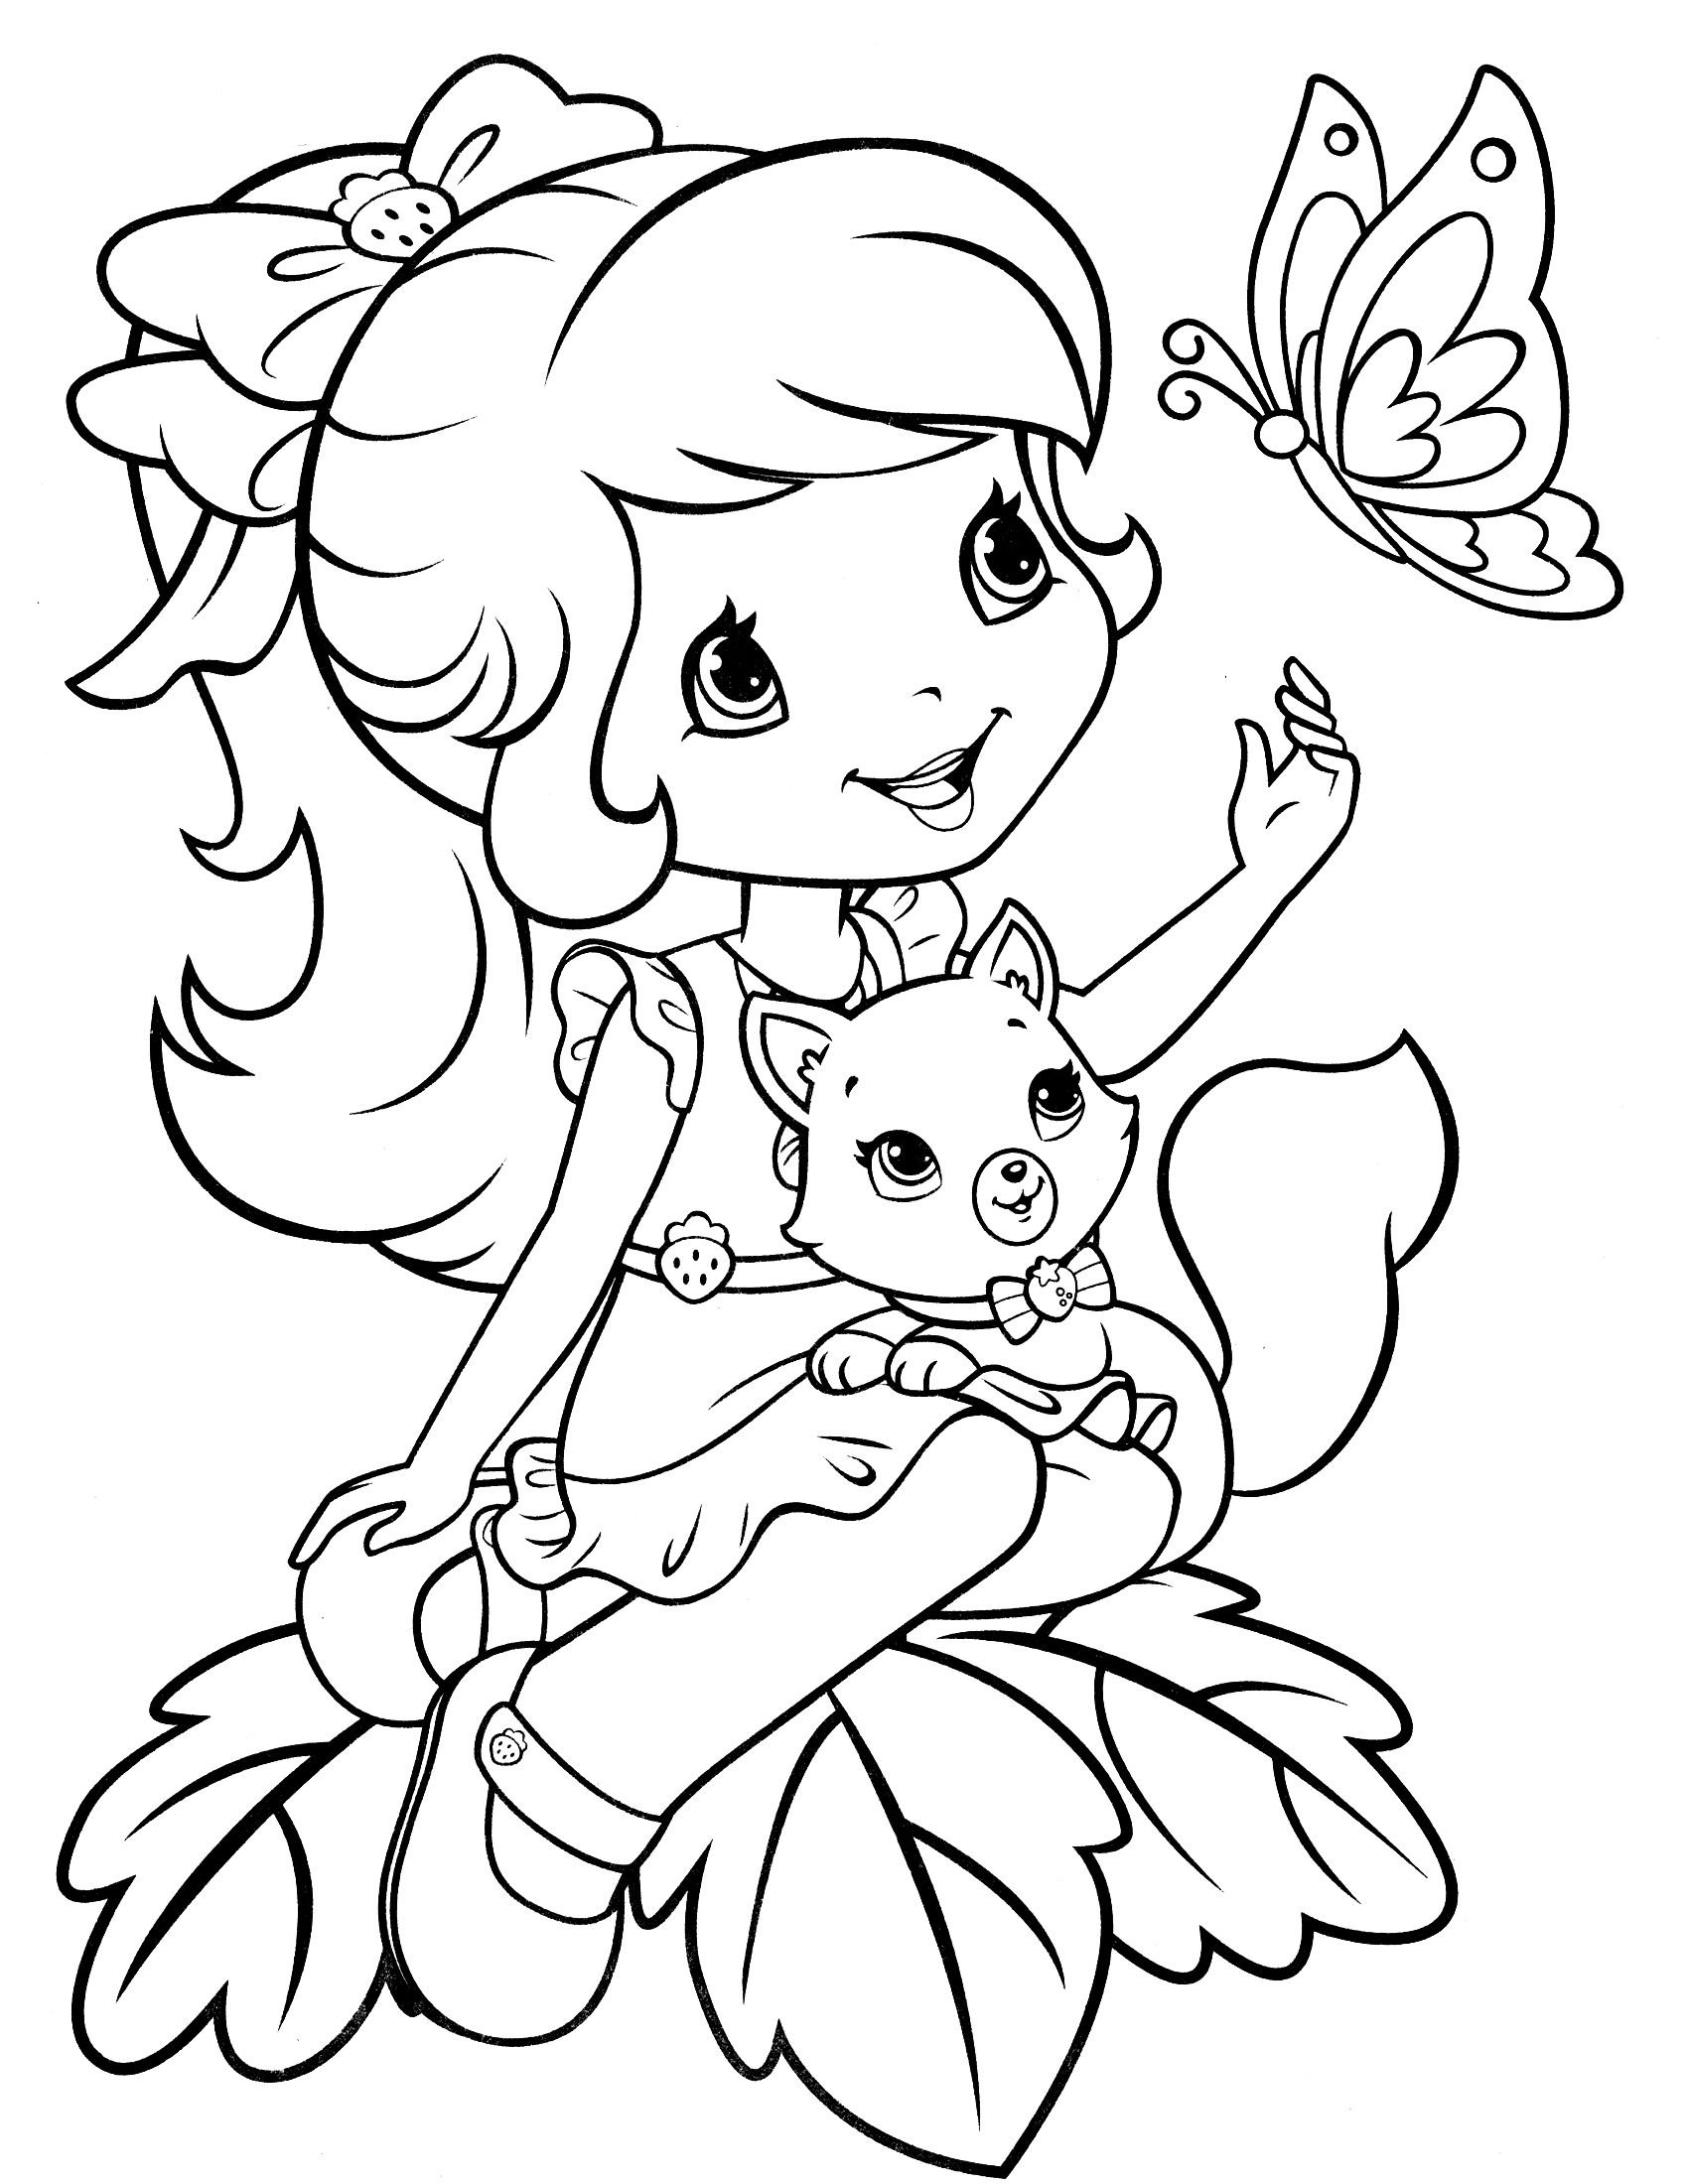 Strawberry Shortcake Coloring Page   Coloring/ Digi Stamps